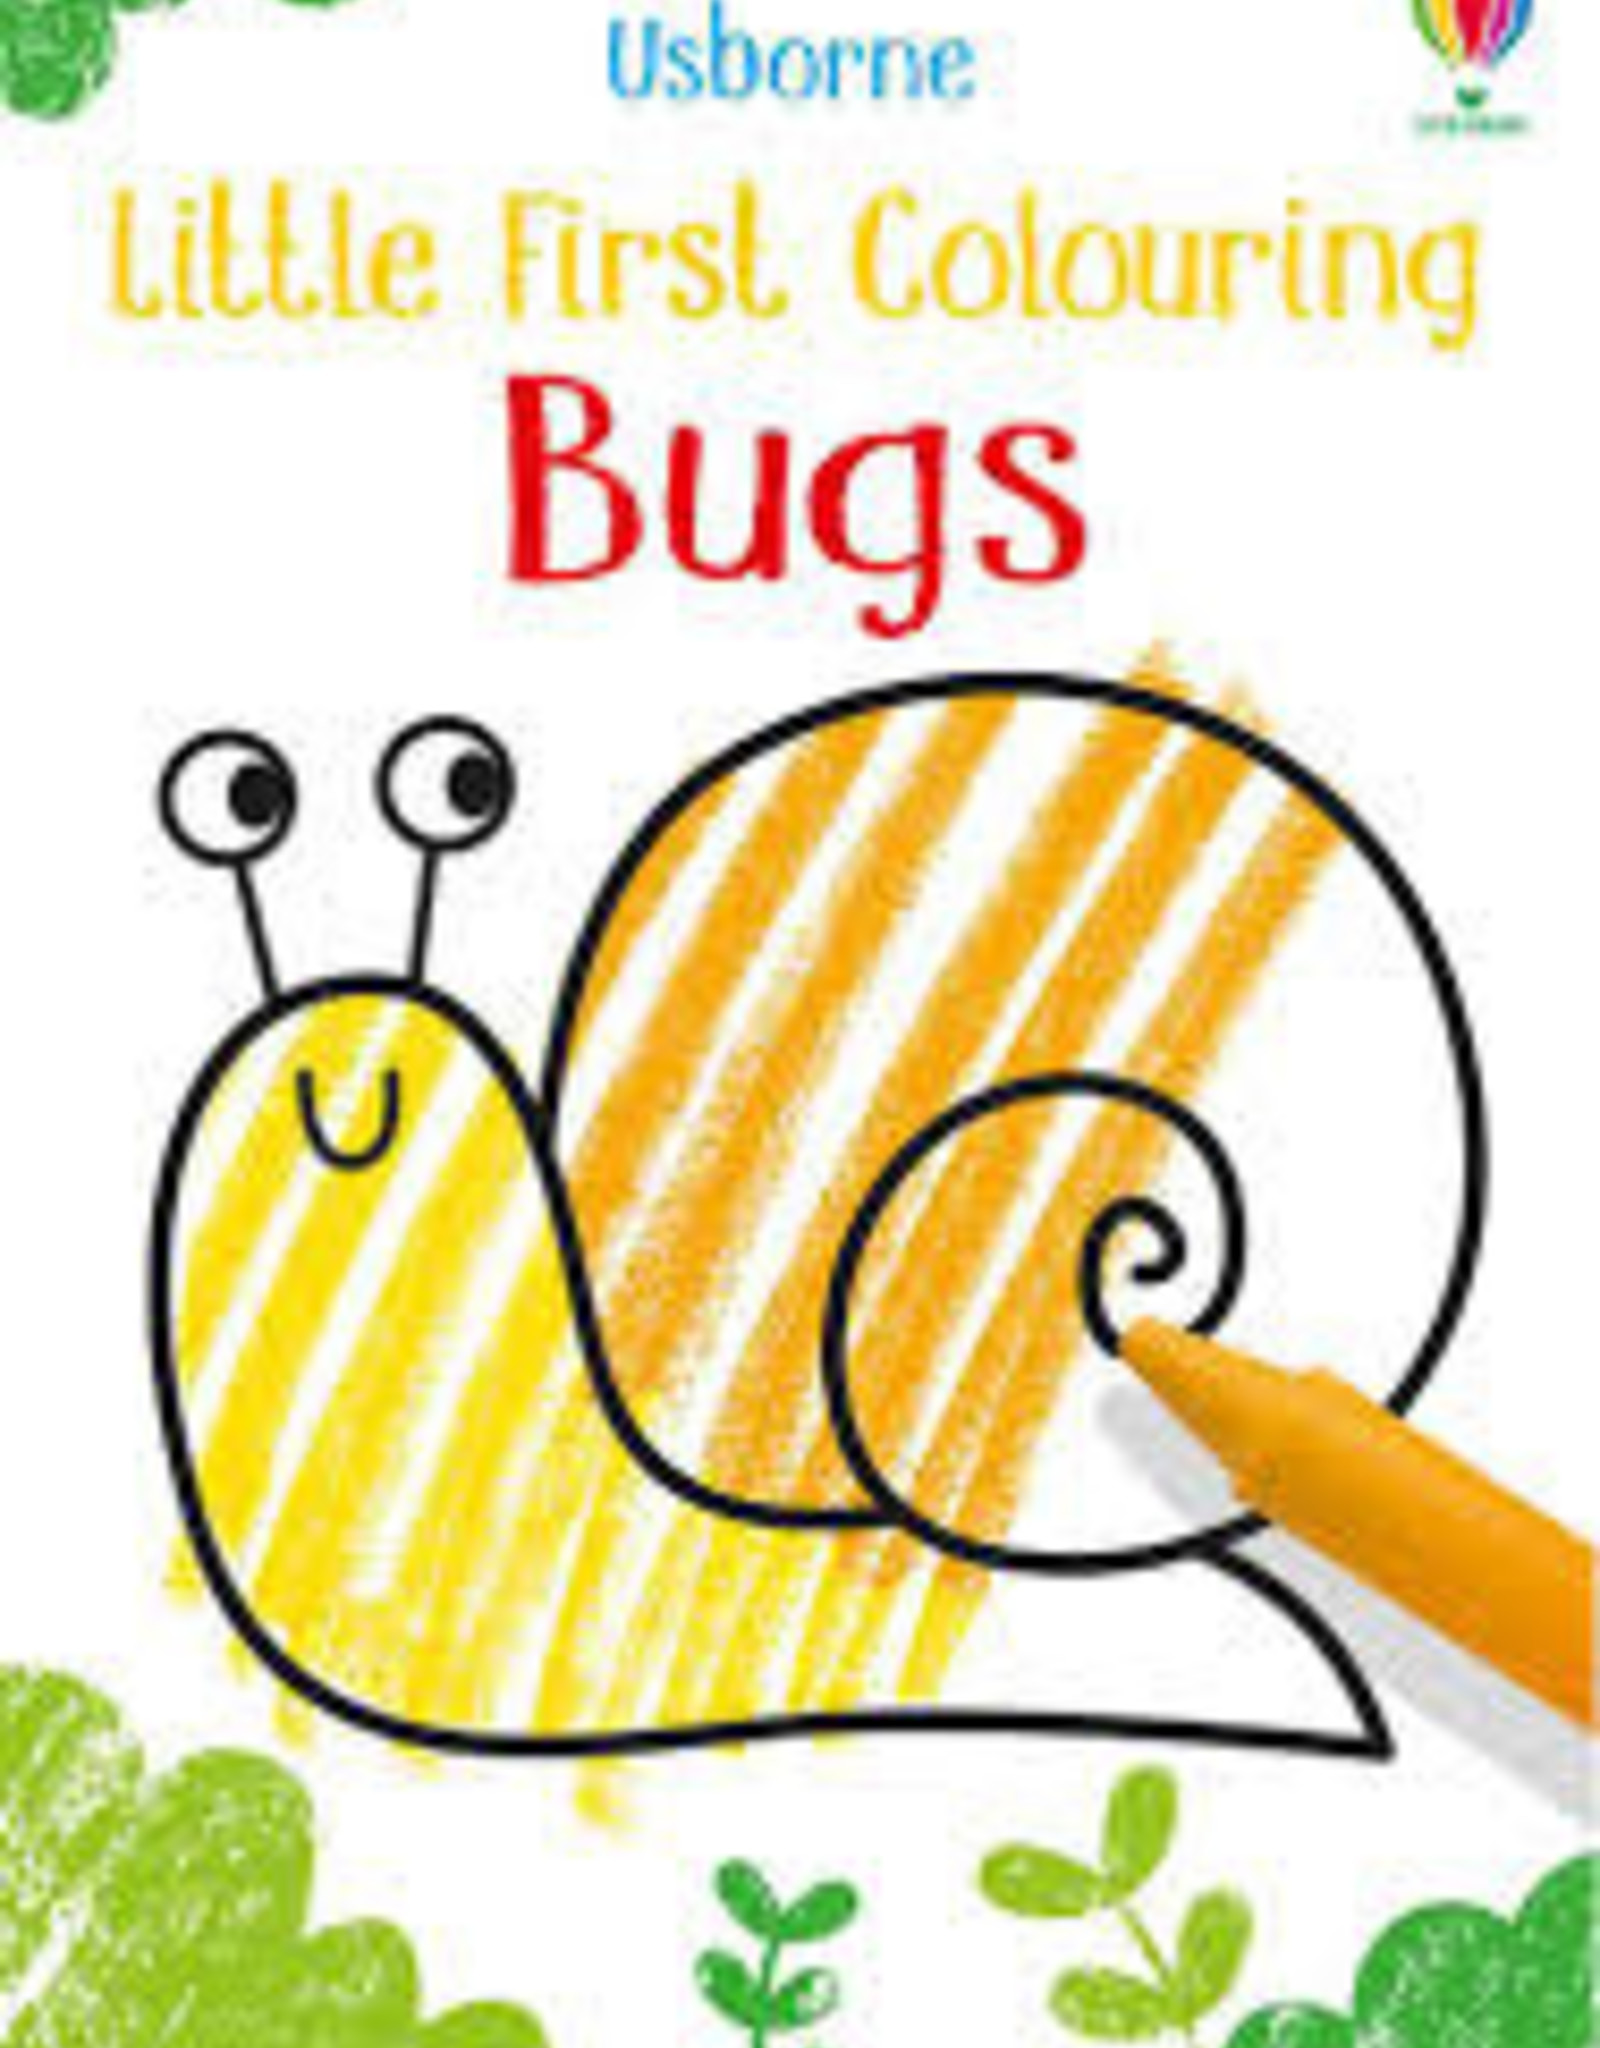 Usborne Usborne Little First Colouring Bugs